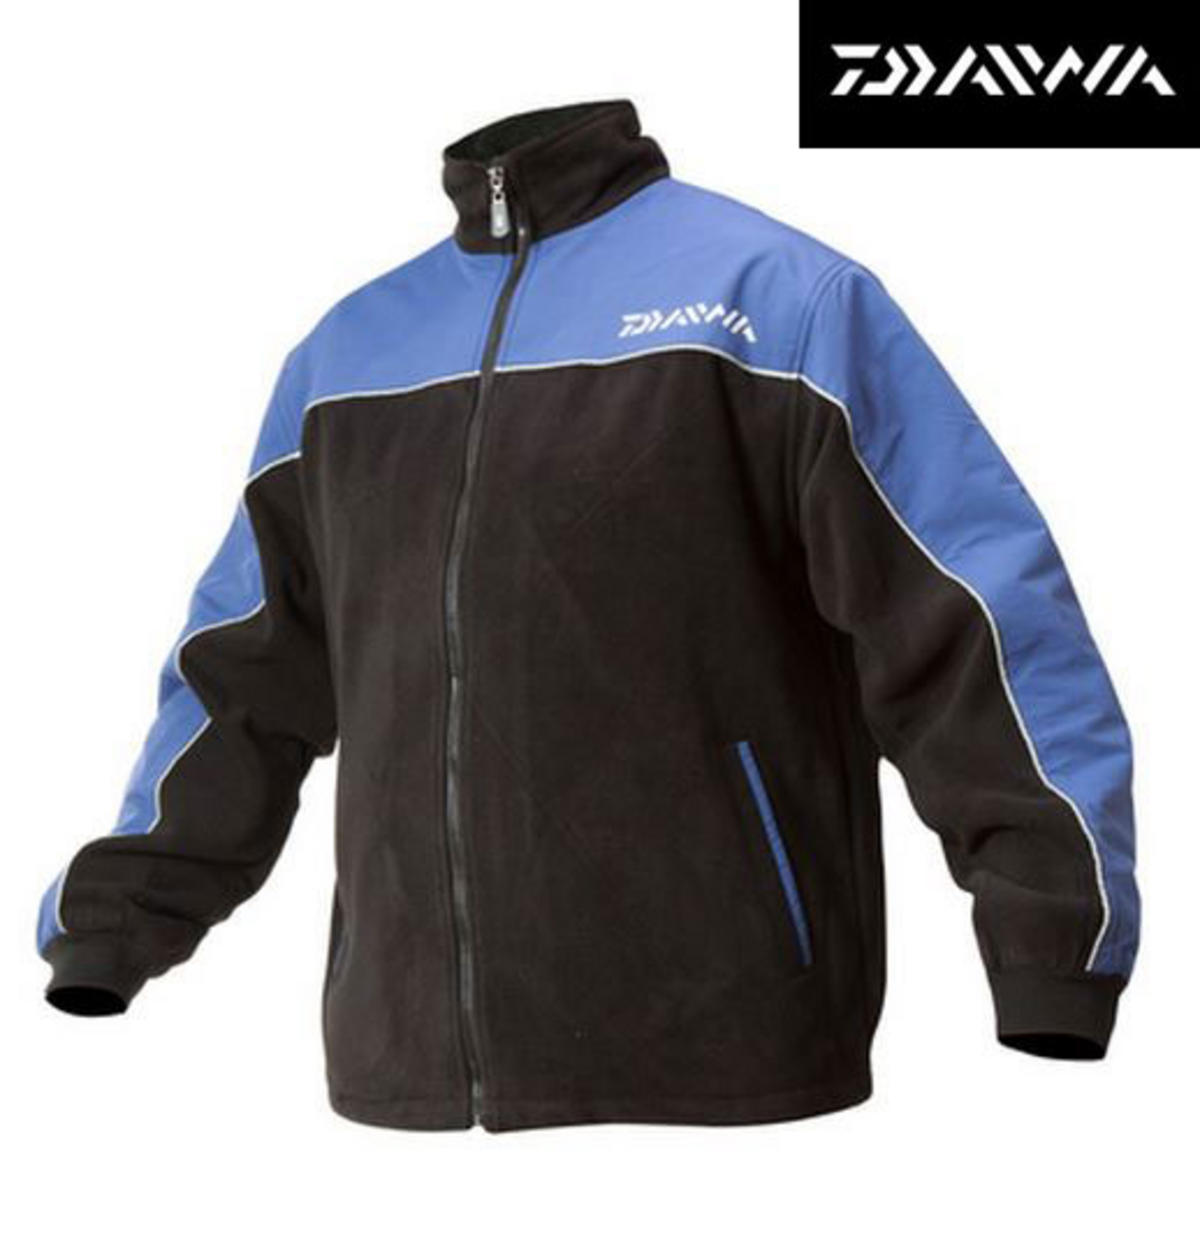 DAIWA FLEECE JACKET ALL SIZES AVAILABLE DFJB & DFJR